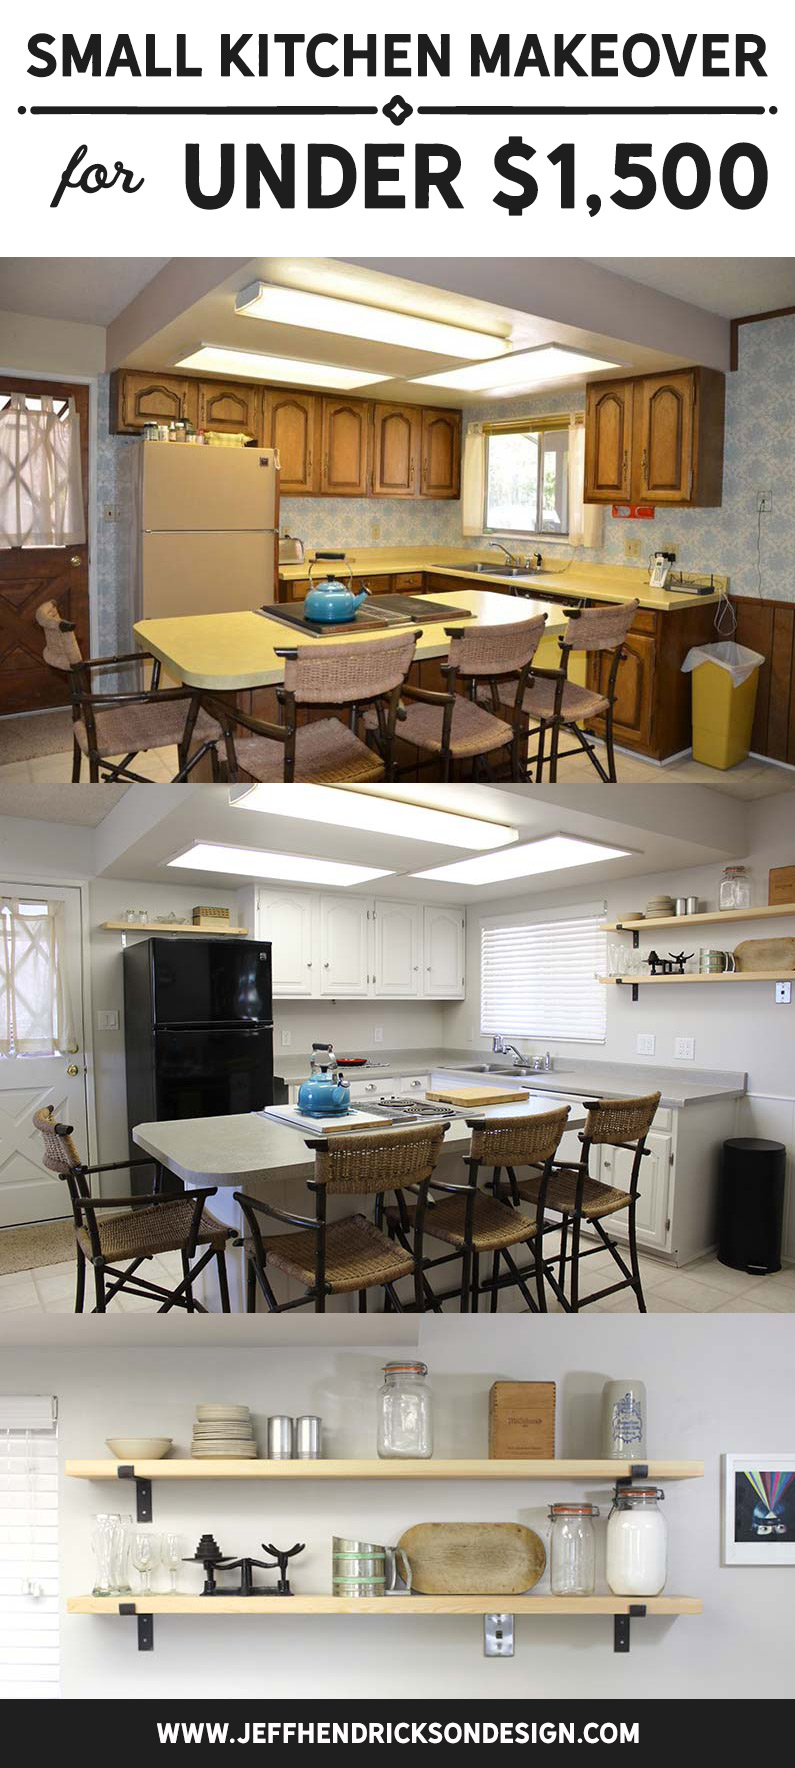 From 70's to an updated, clean, fresh, white kitchen for under $1,500!